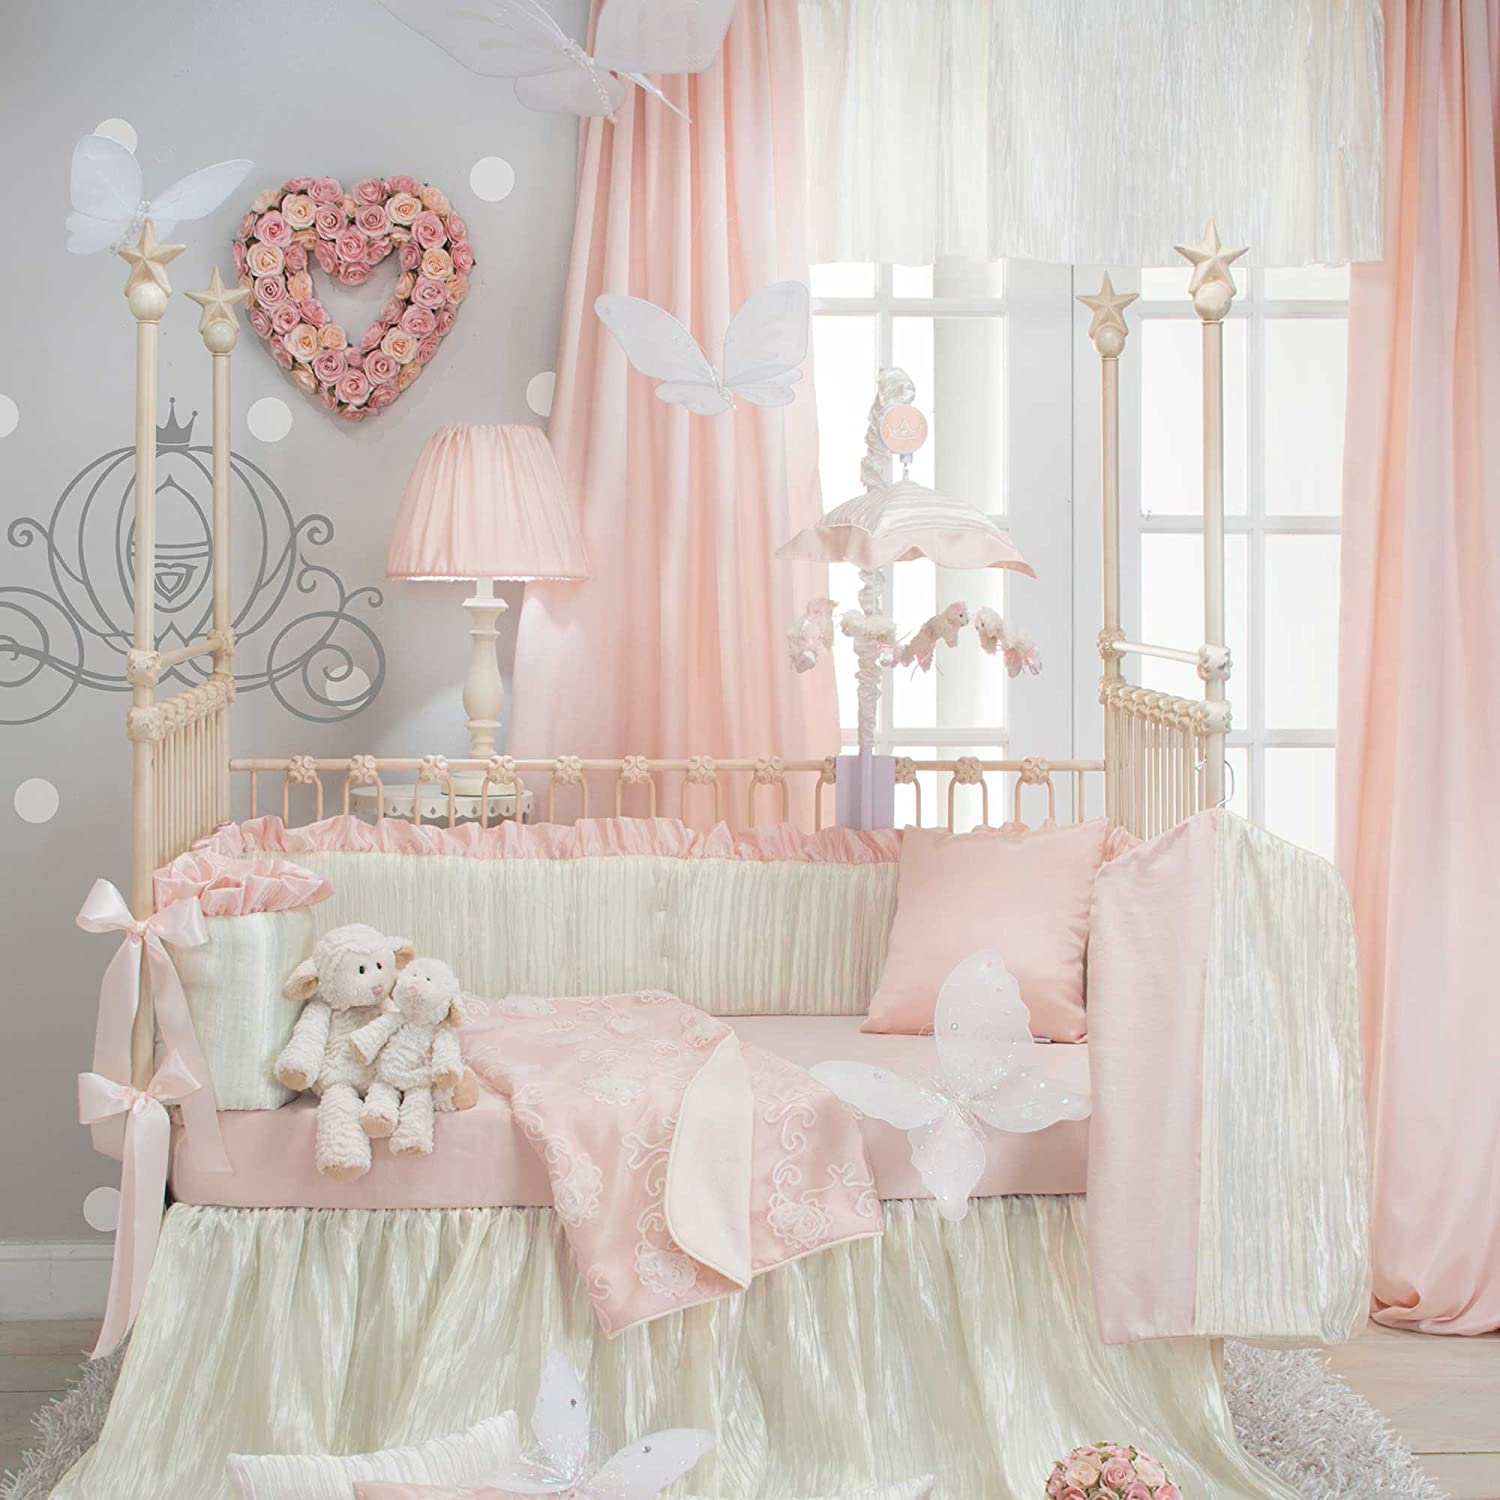 Sweet Potato Lil Princess Crib Bedding